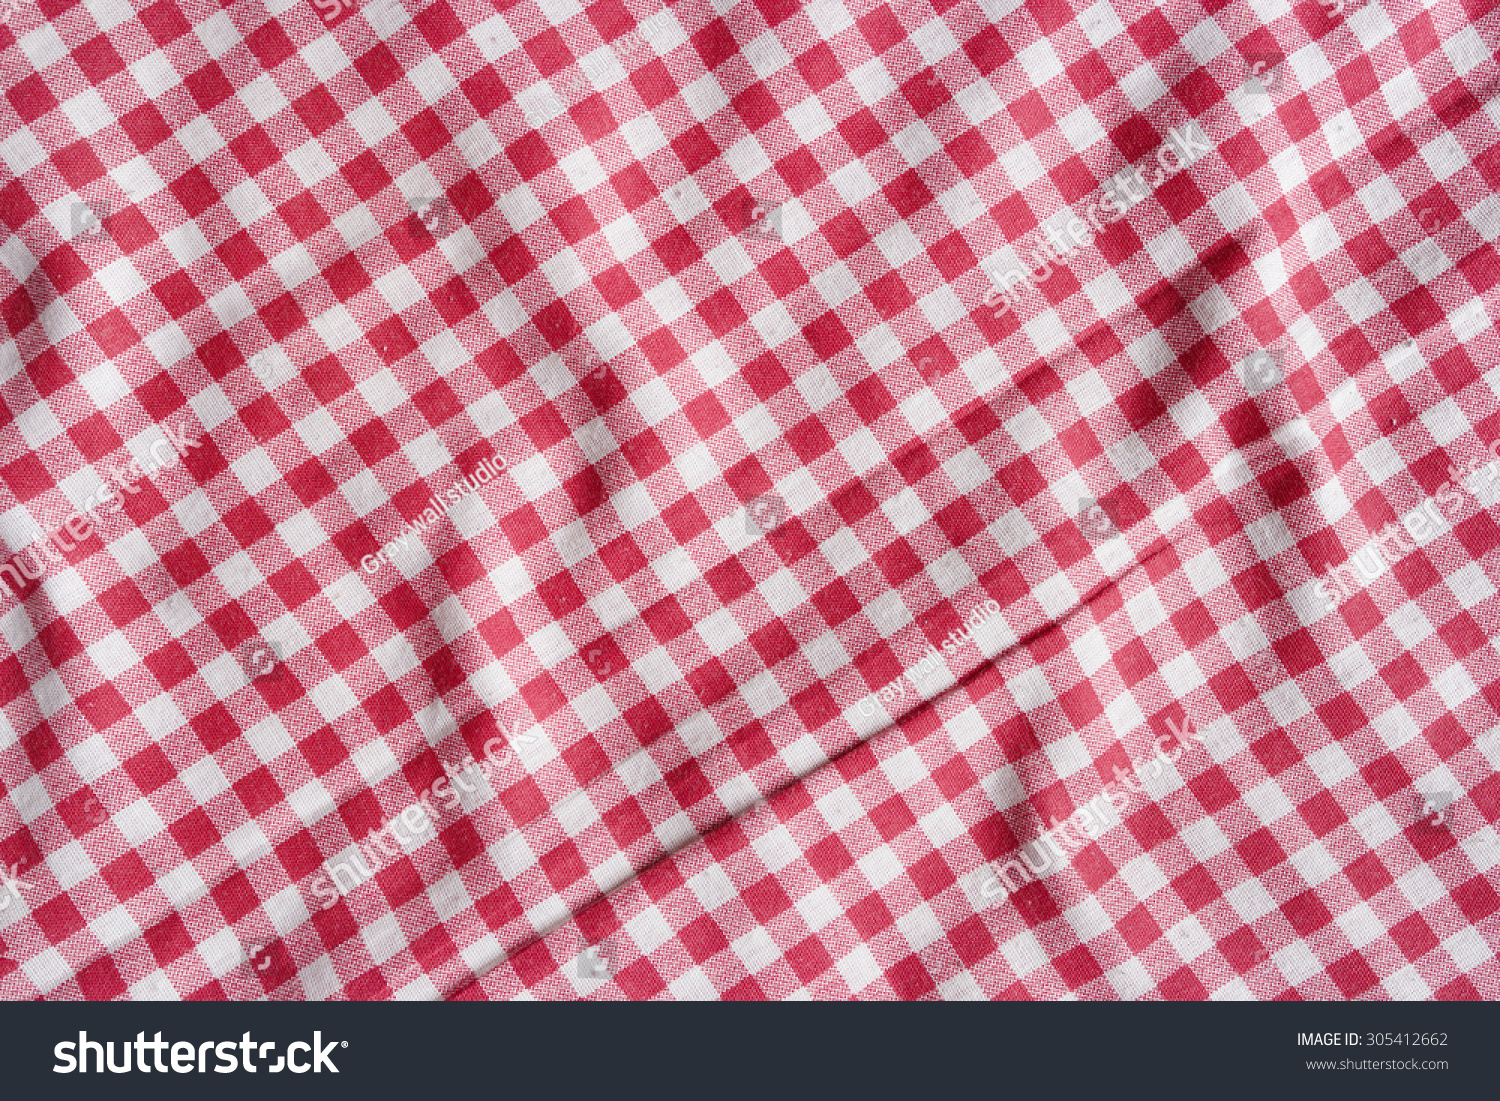 Red Picnic Tablecloth Background. Red And White Checkered Fabric Texture